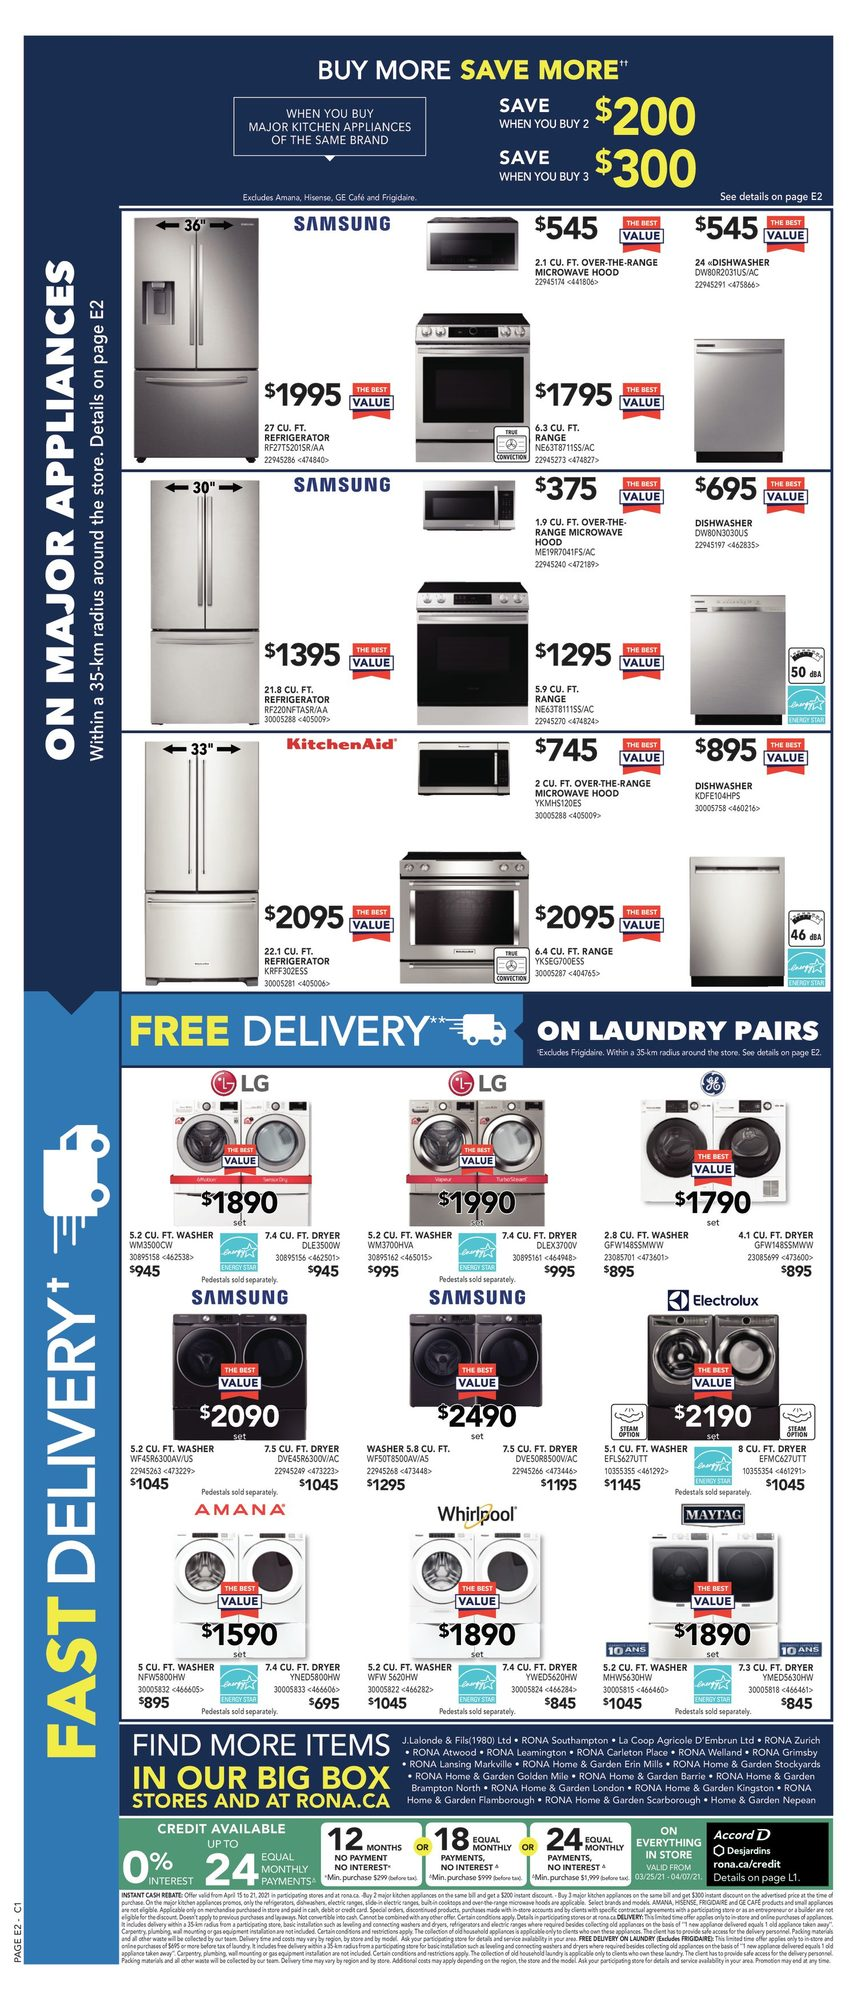 Rona - Weekly Flyer Specials - Page 7